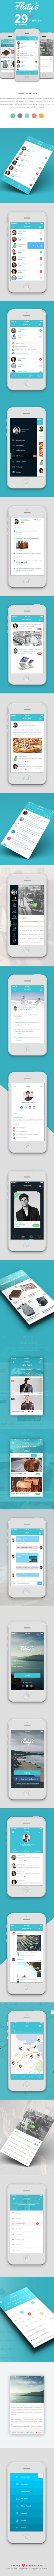 Flaty's – Flat Mobile App UI Design +download by Ayoub Elred, via Behance